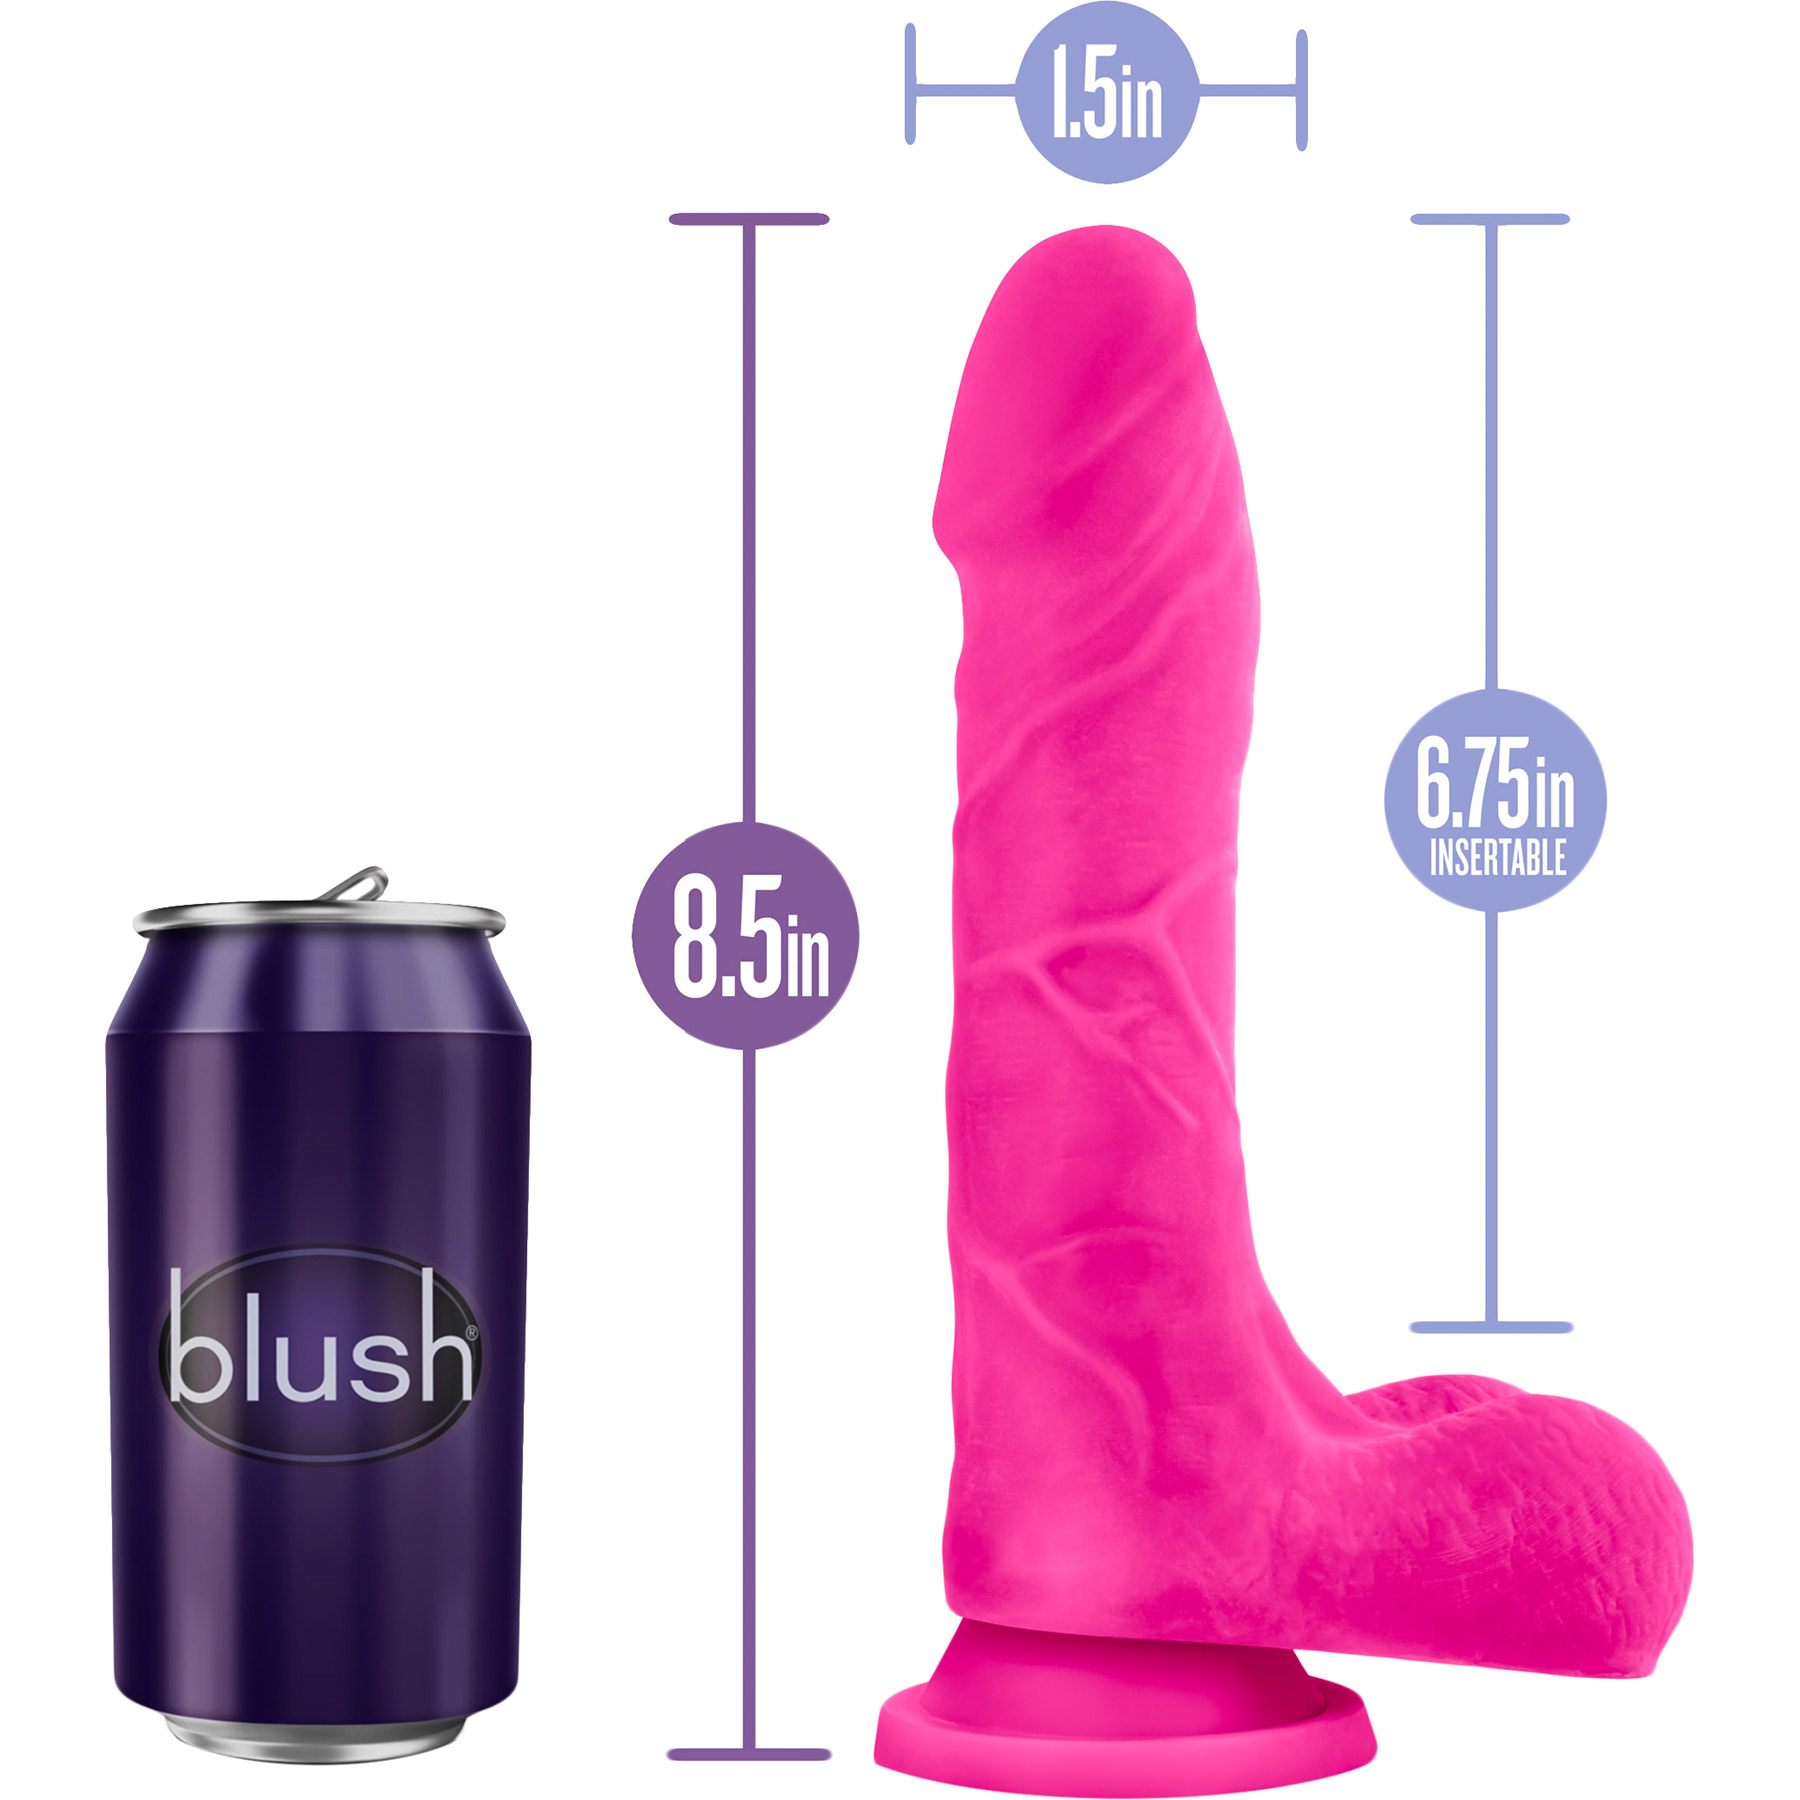 Au Naturel Bold Thrill 8.5 Inch Sensa Feel Dual Density Dildo - Measurements